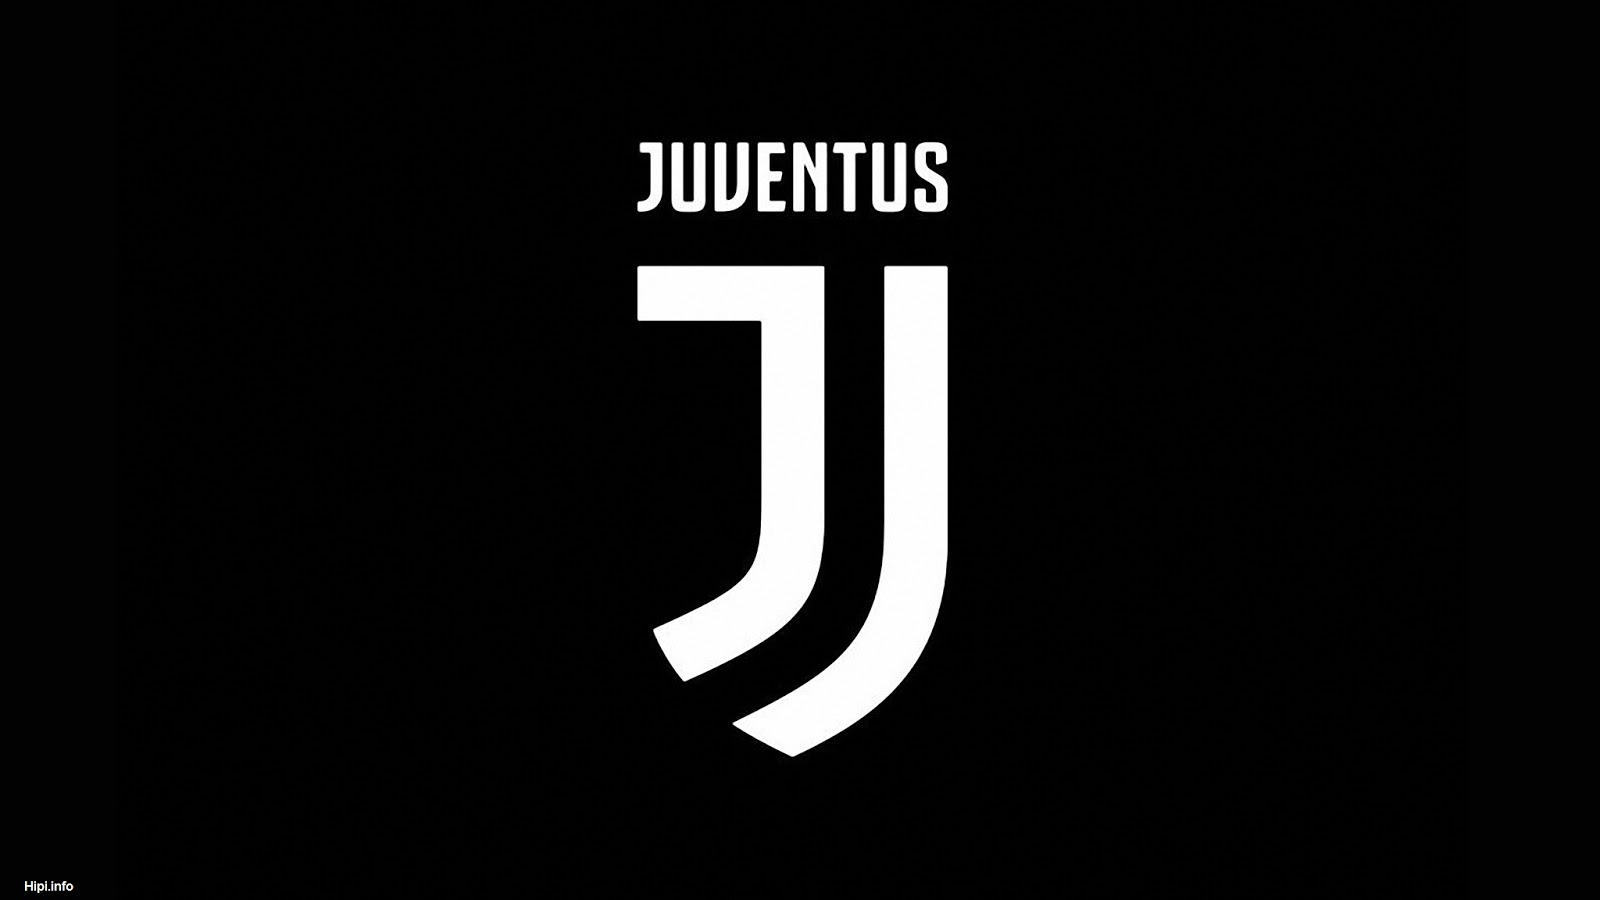 Twitter headers facebook covers wallpapers calendars for Sfondo juventus hd